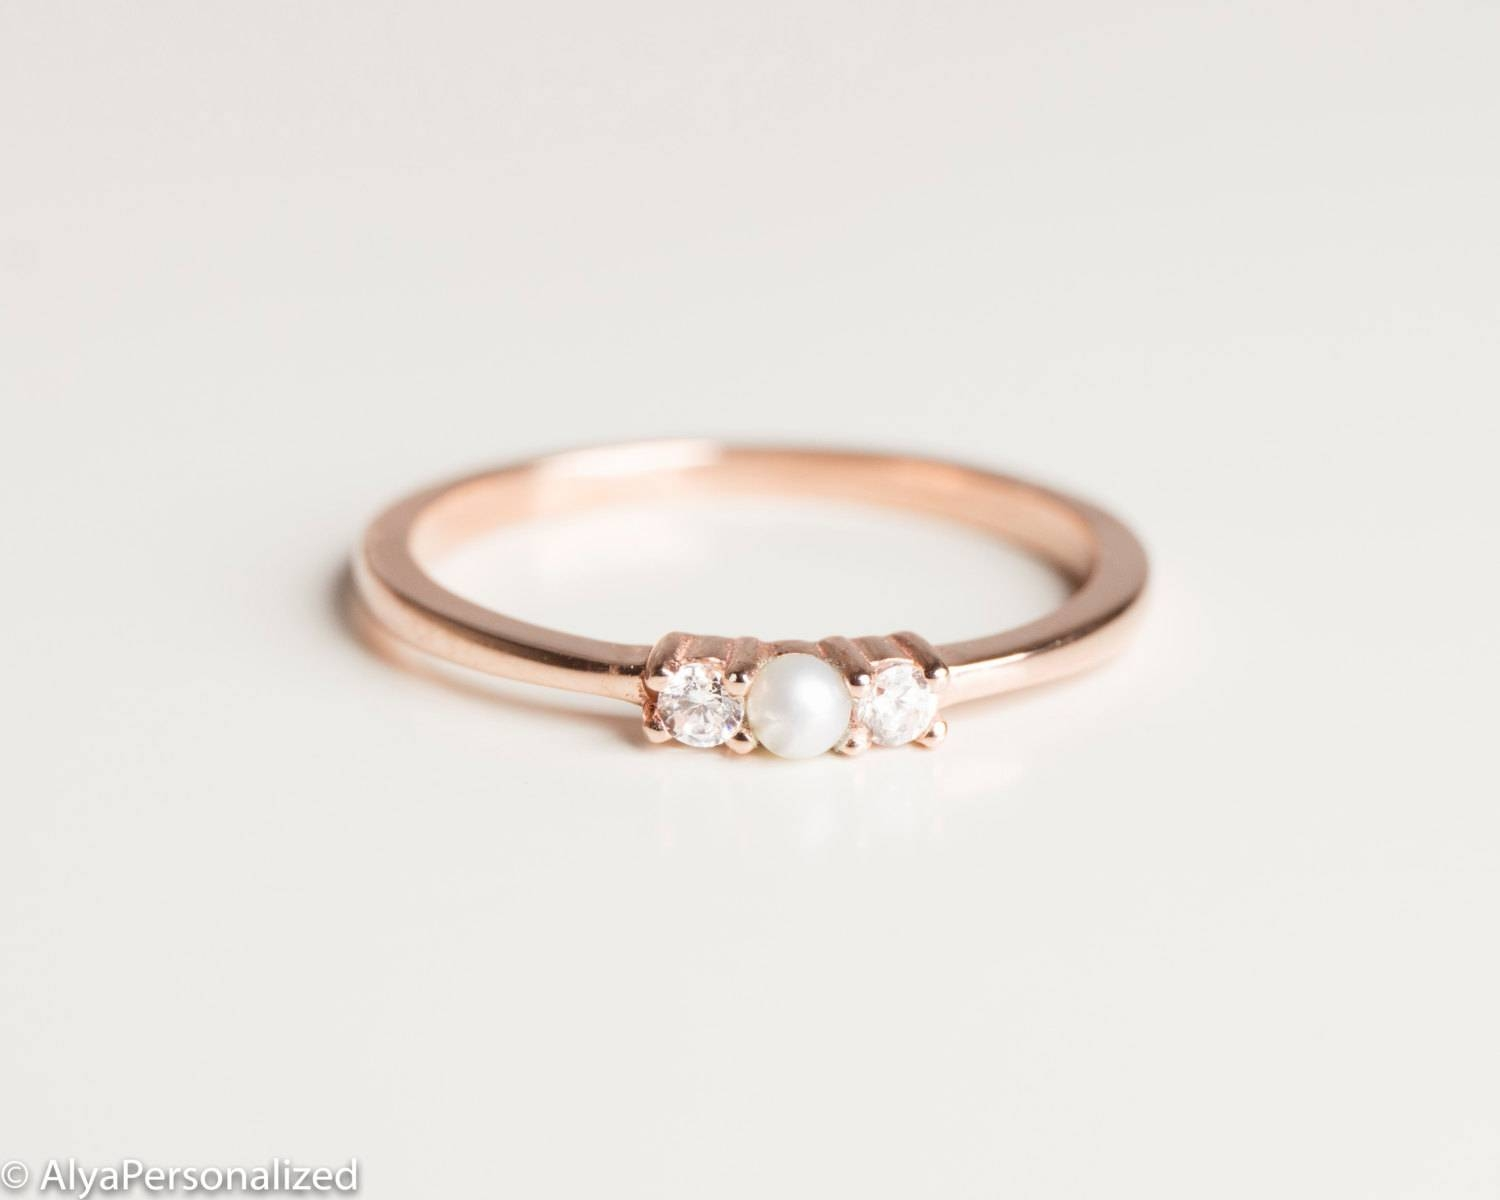 Anniversary Ring Simple Ring Band Thin Rose Gold Ring Regarding Most Current Gold Diamond Anniversary Rings (Gallery 19 of 25)